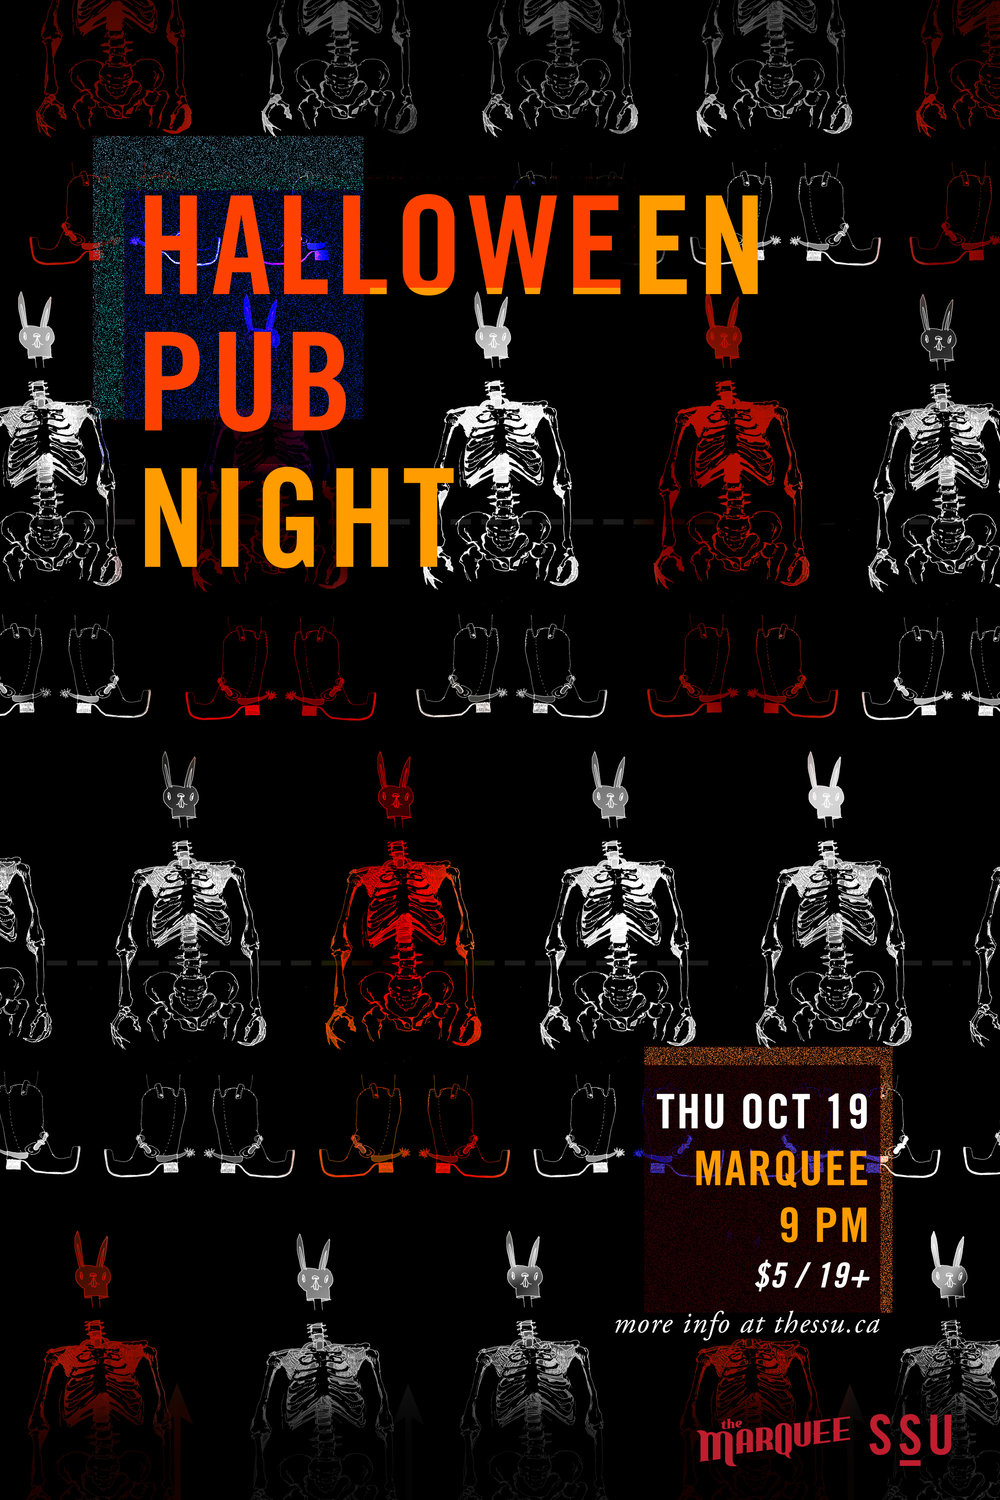 Oct19_HalloweemPubNight_print.jpg